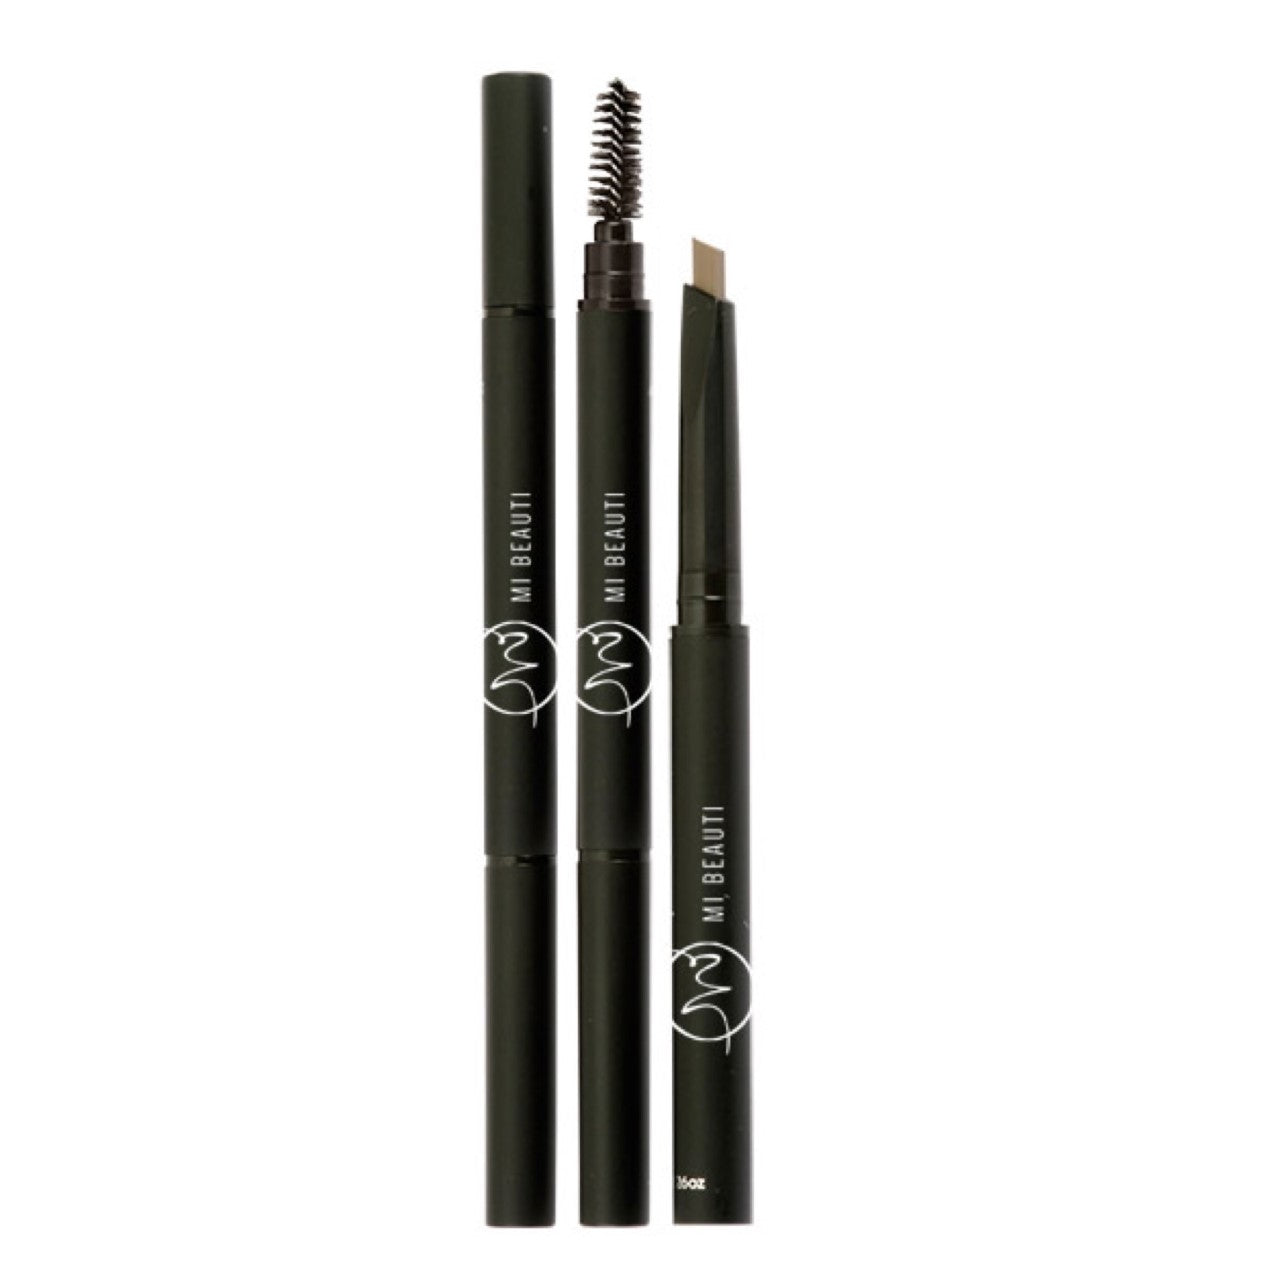 Arch'ology Brow Pencil